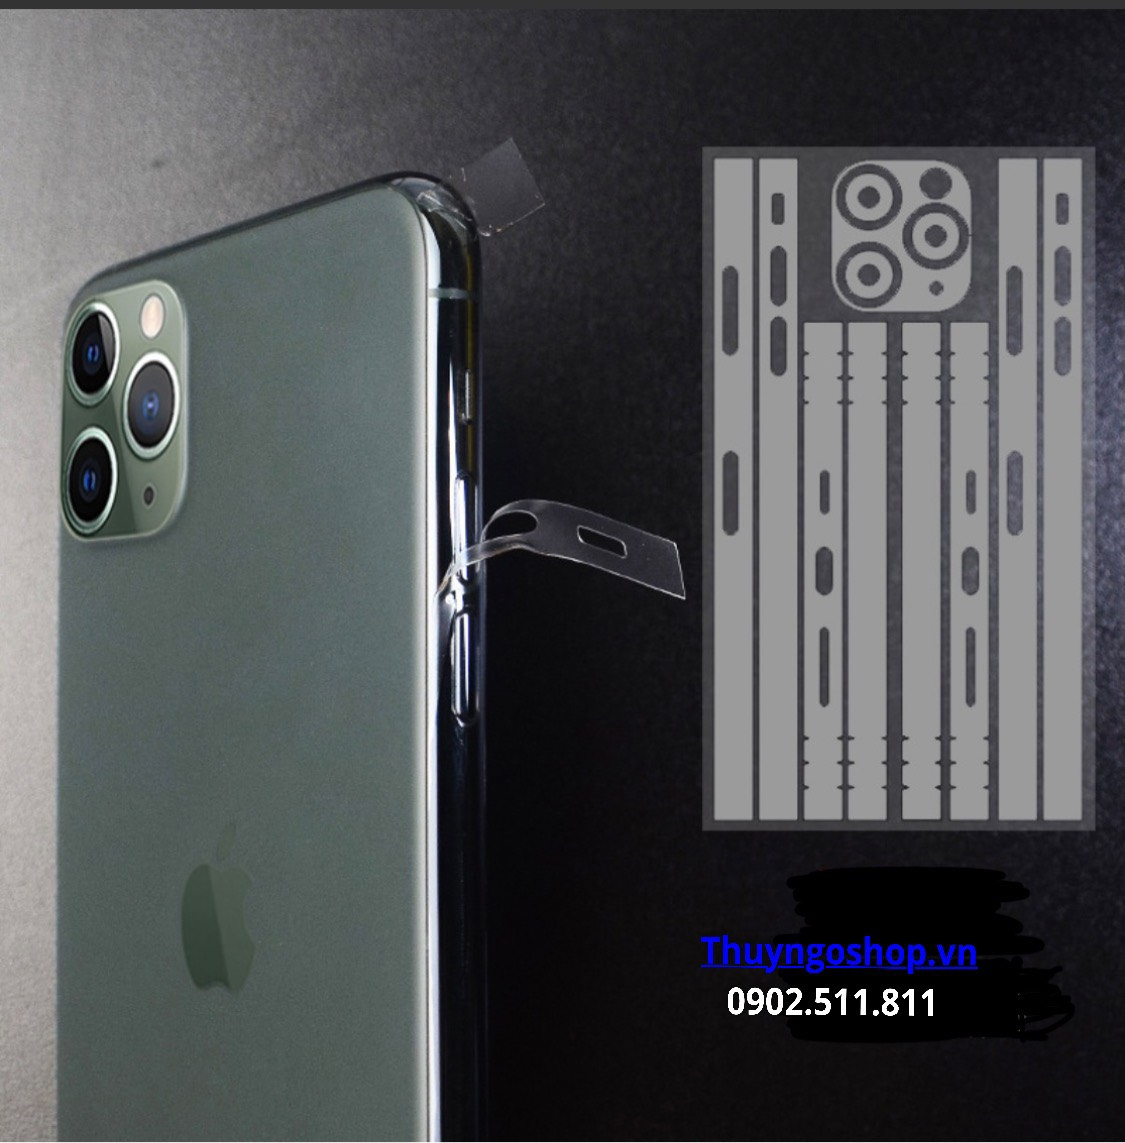 PPF 4 cạnh viền trong suốt / mờ Iphone 12 - 12 Pro